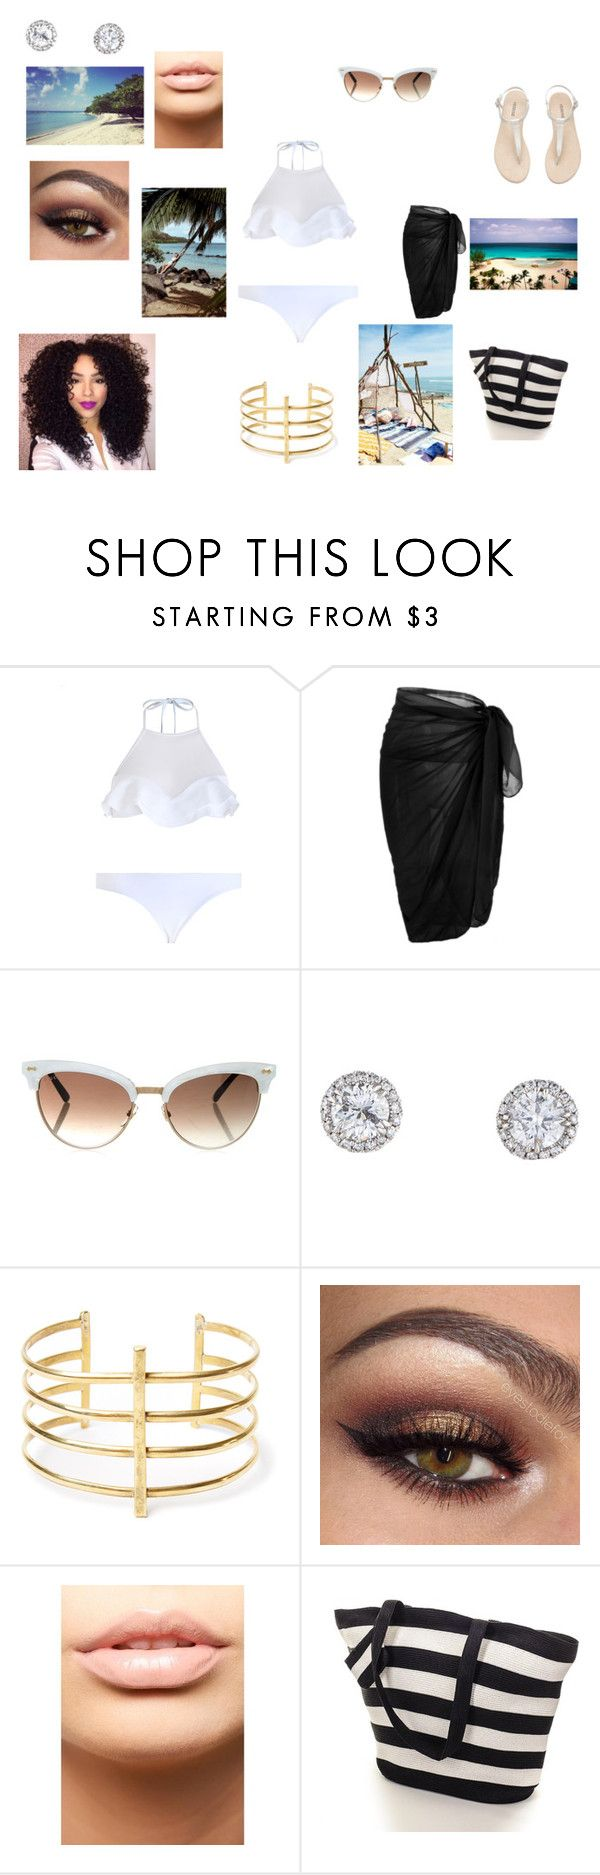 Oxigeno by olgasanchez09 on Polyvore featuring Belleza, MDMflow, Gucci, BauXo and Zimmermann